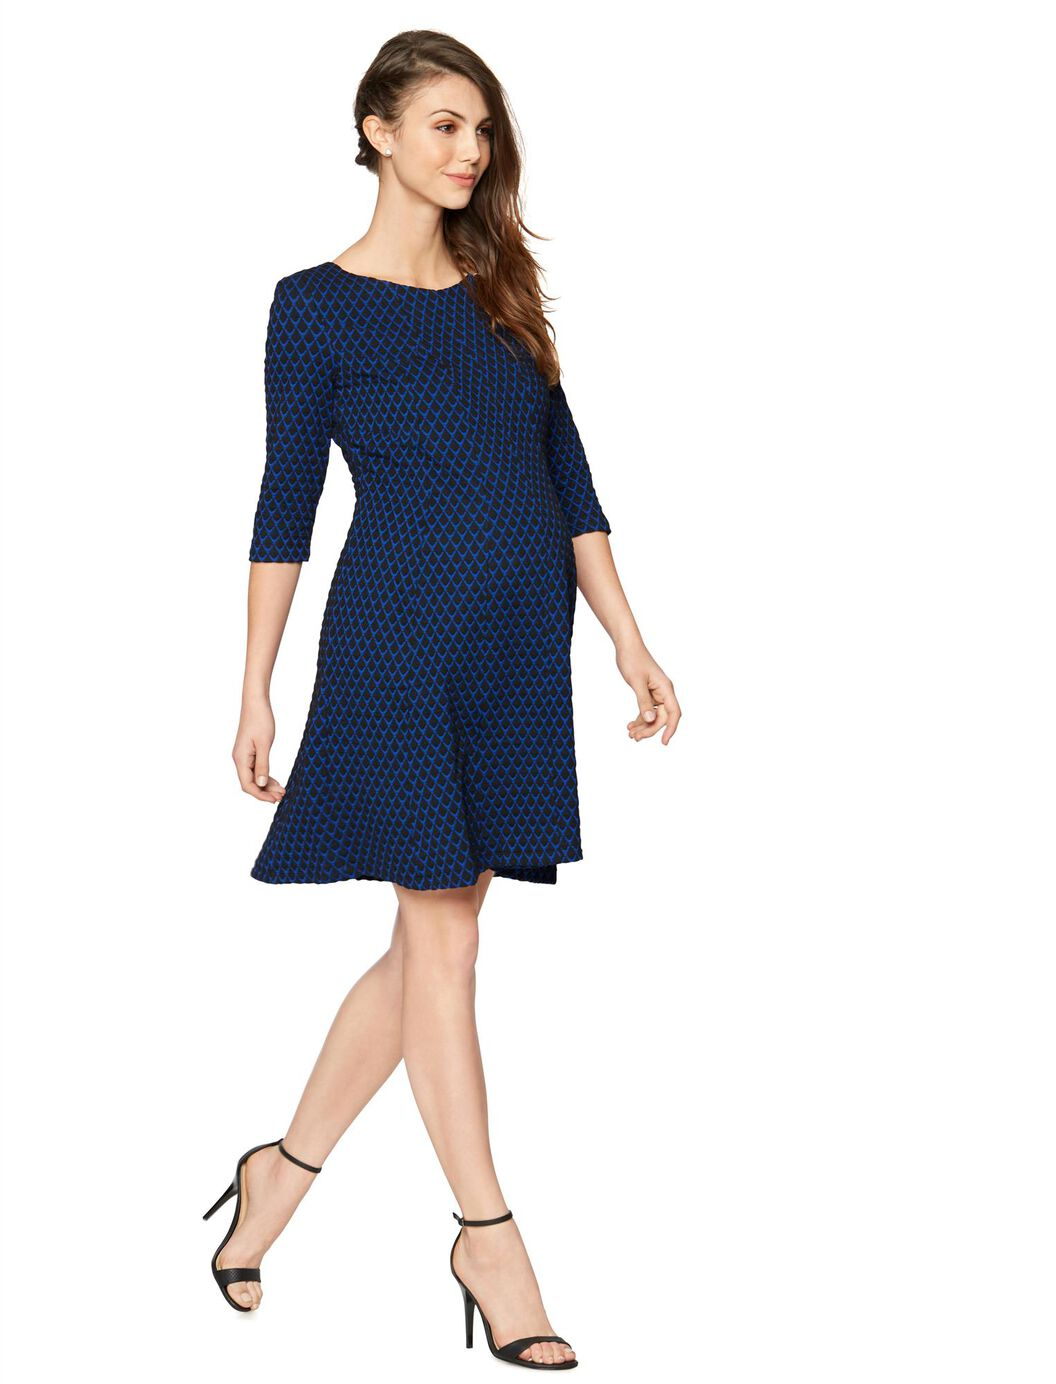 Taylor fit and flare maternity dress a pea in the pod maternity taylor fit and flare maternity dress royal blueblack ombrellifo Gallery